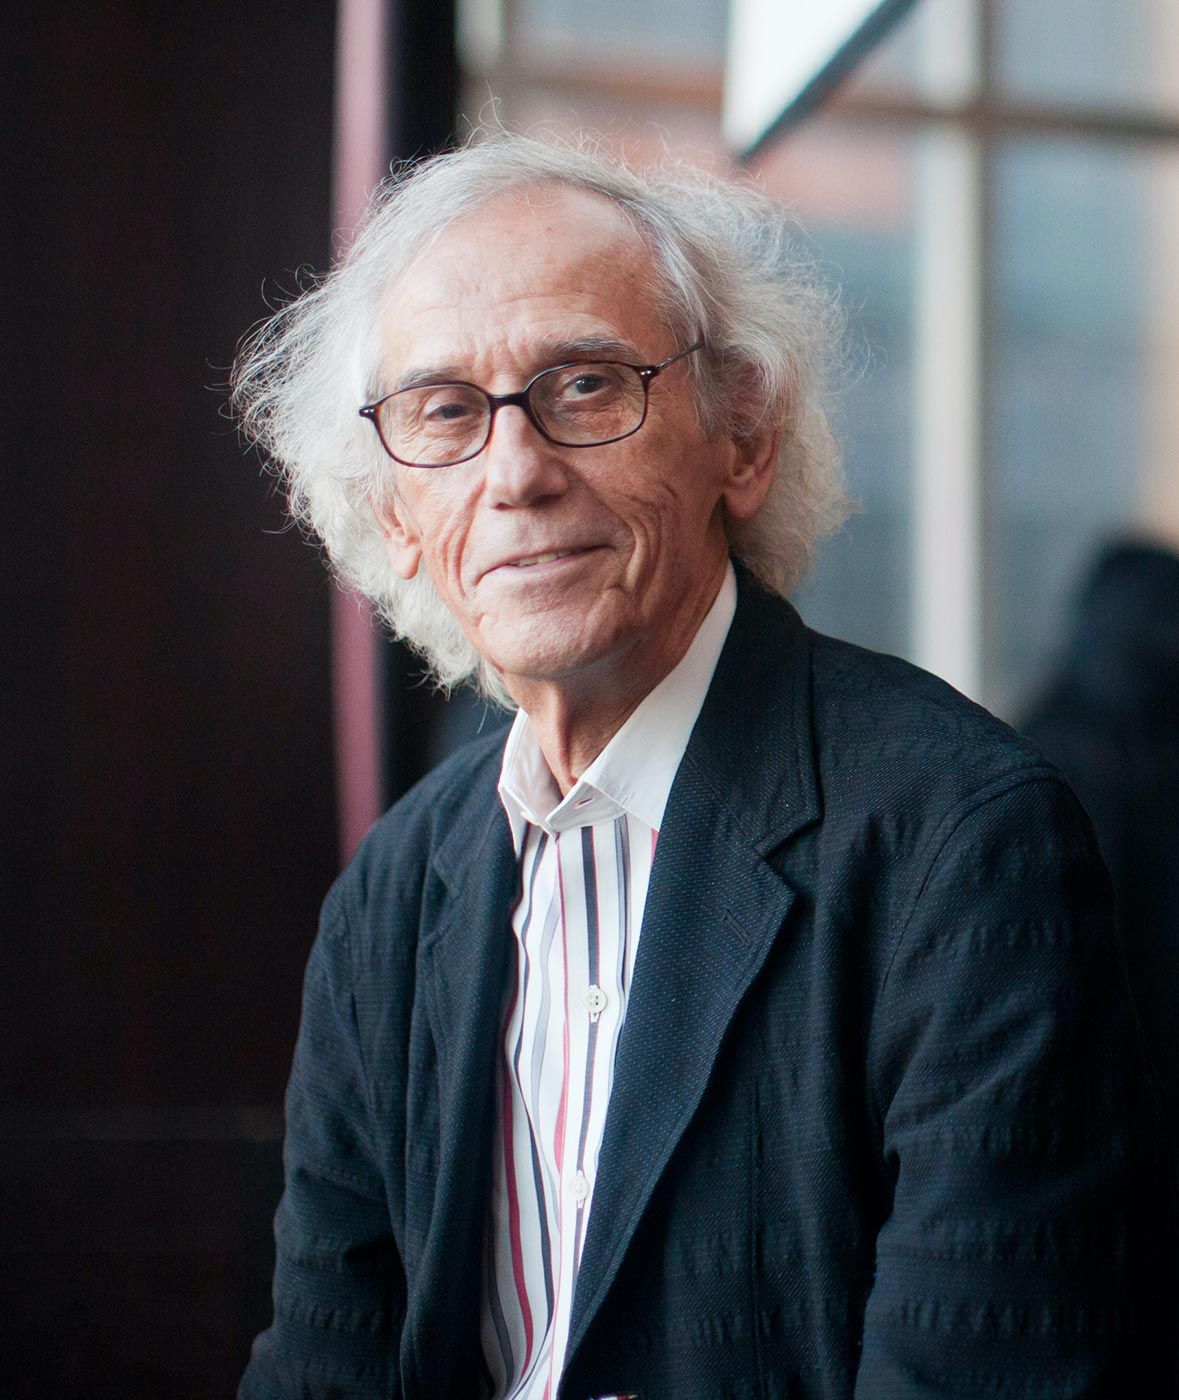 Christo standing in front of a wall of windows at the Mandarin Oriental in New York City.